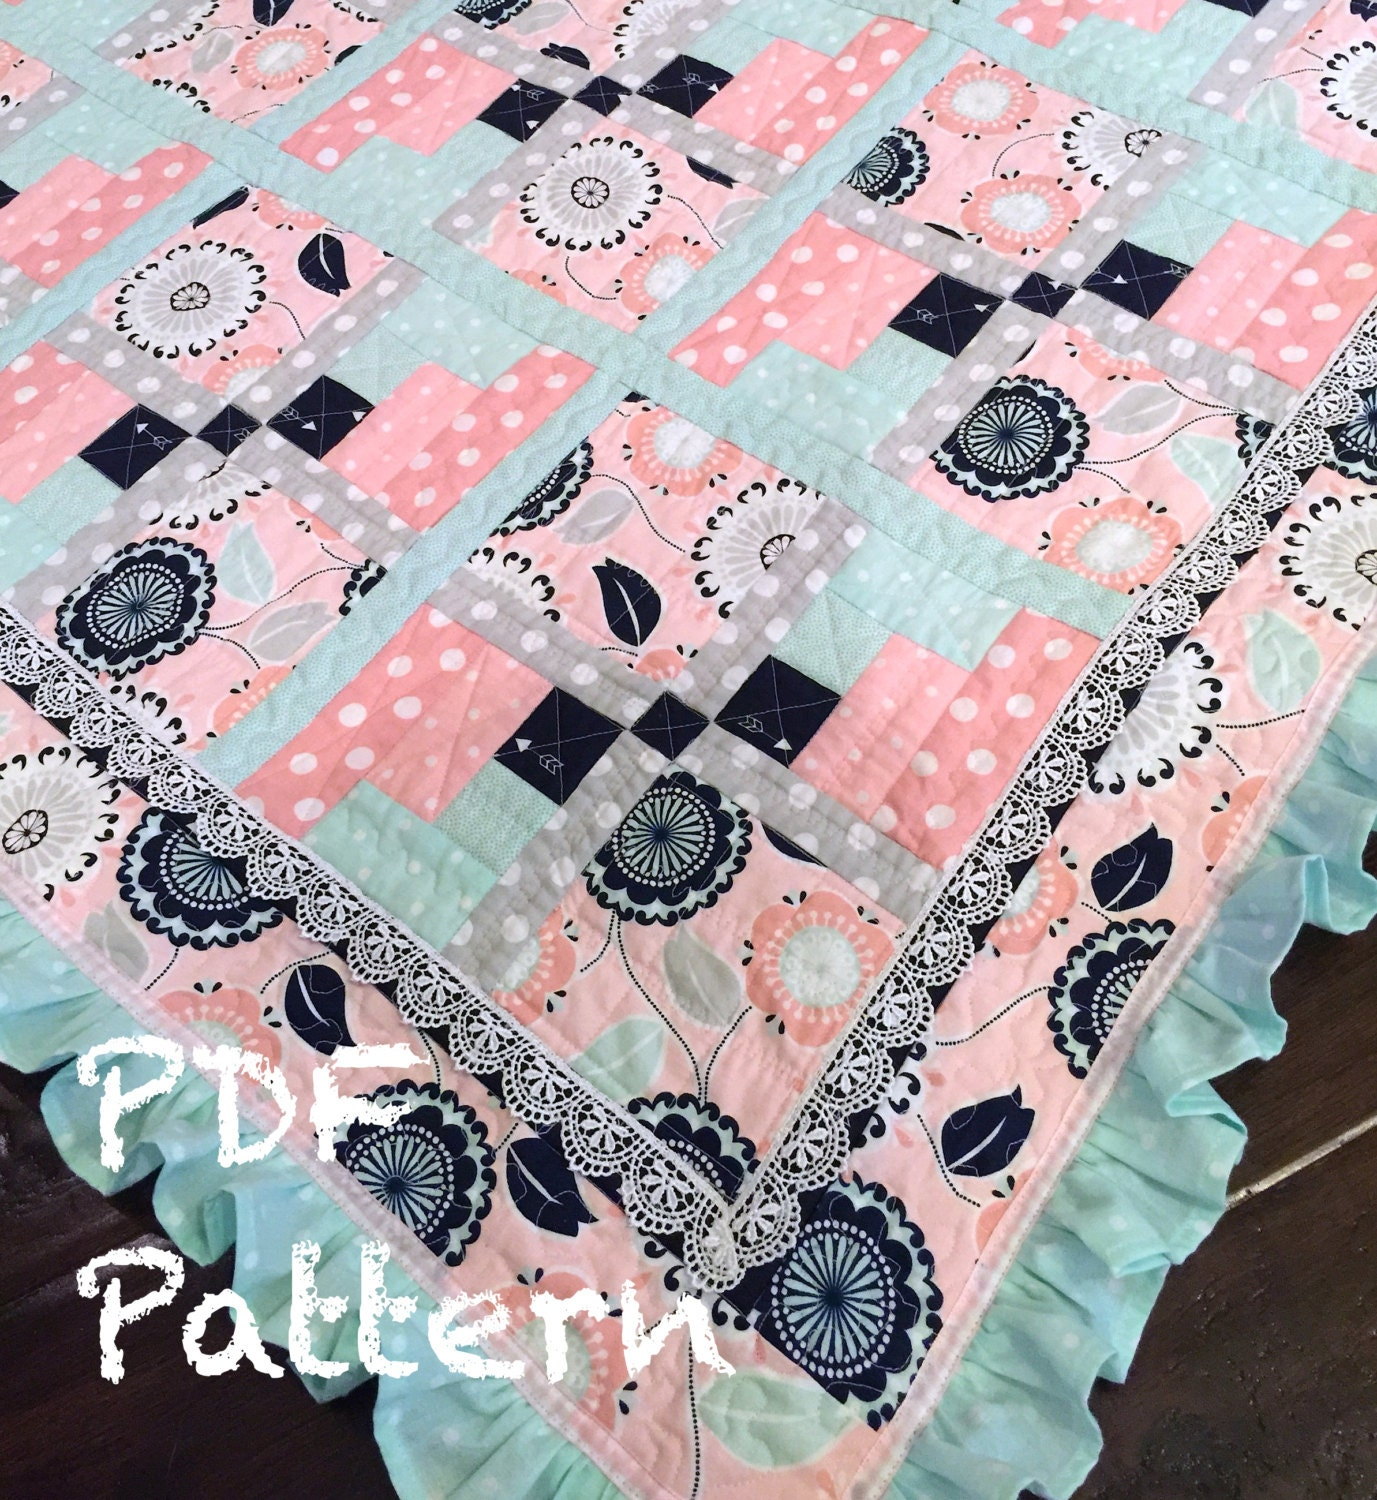 zoom for boy quilt patter ruffle baby room listing fullxfull girl il pattern quilts